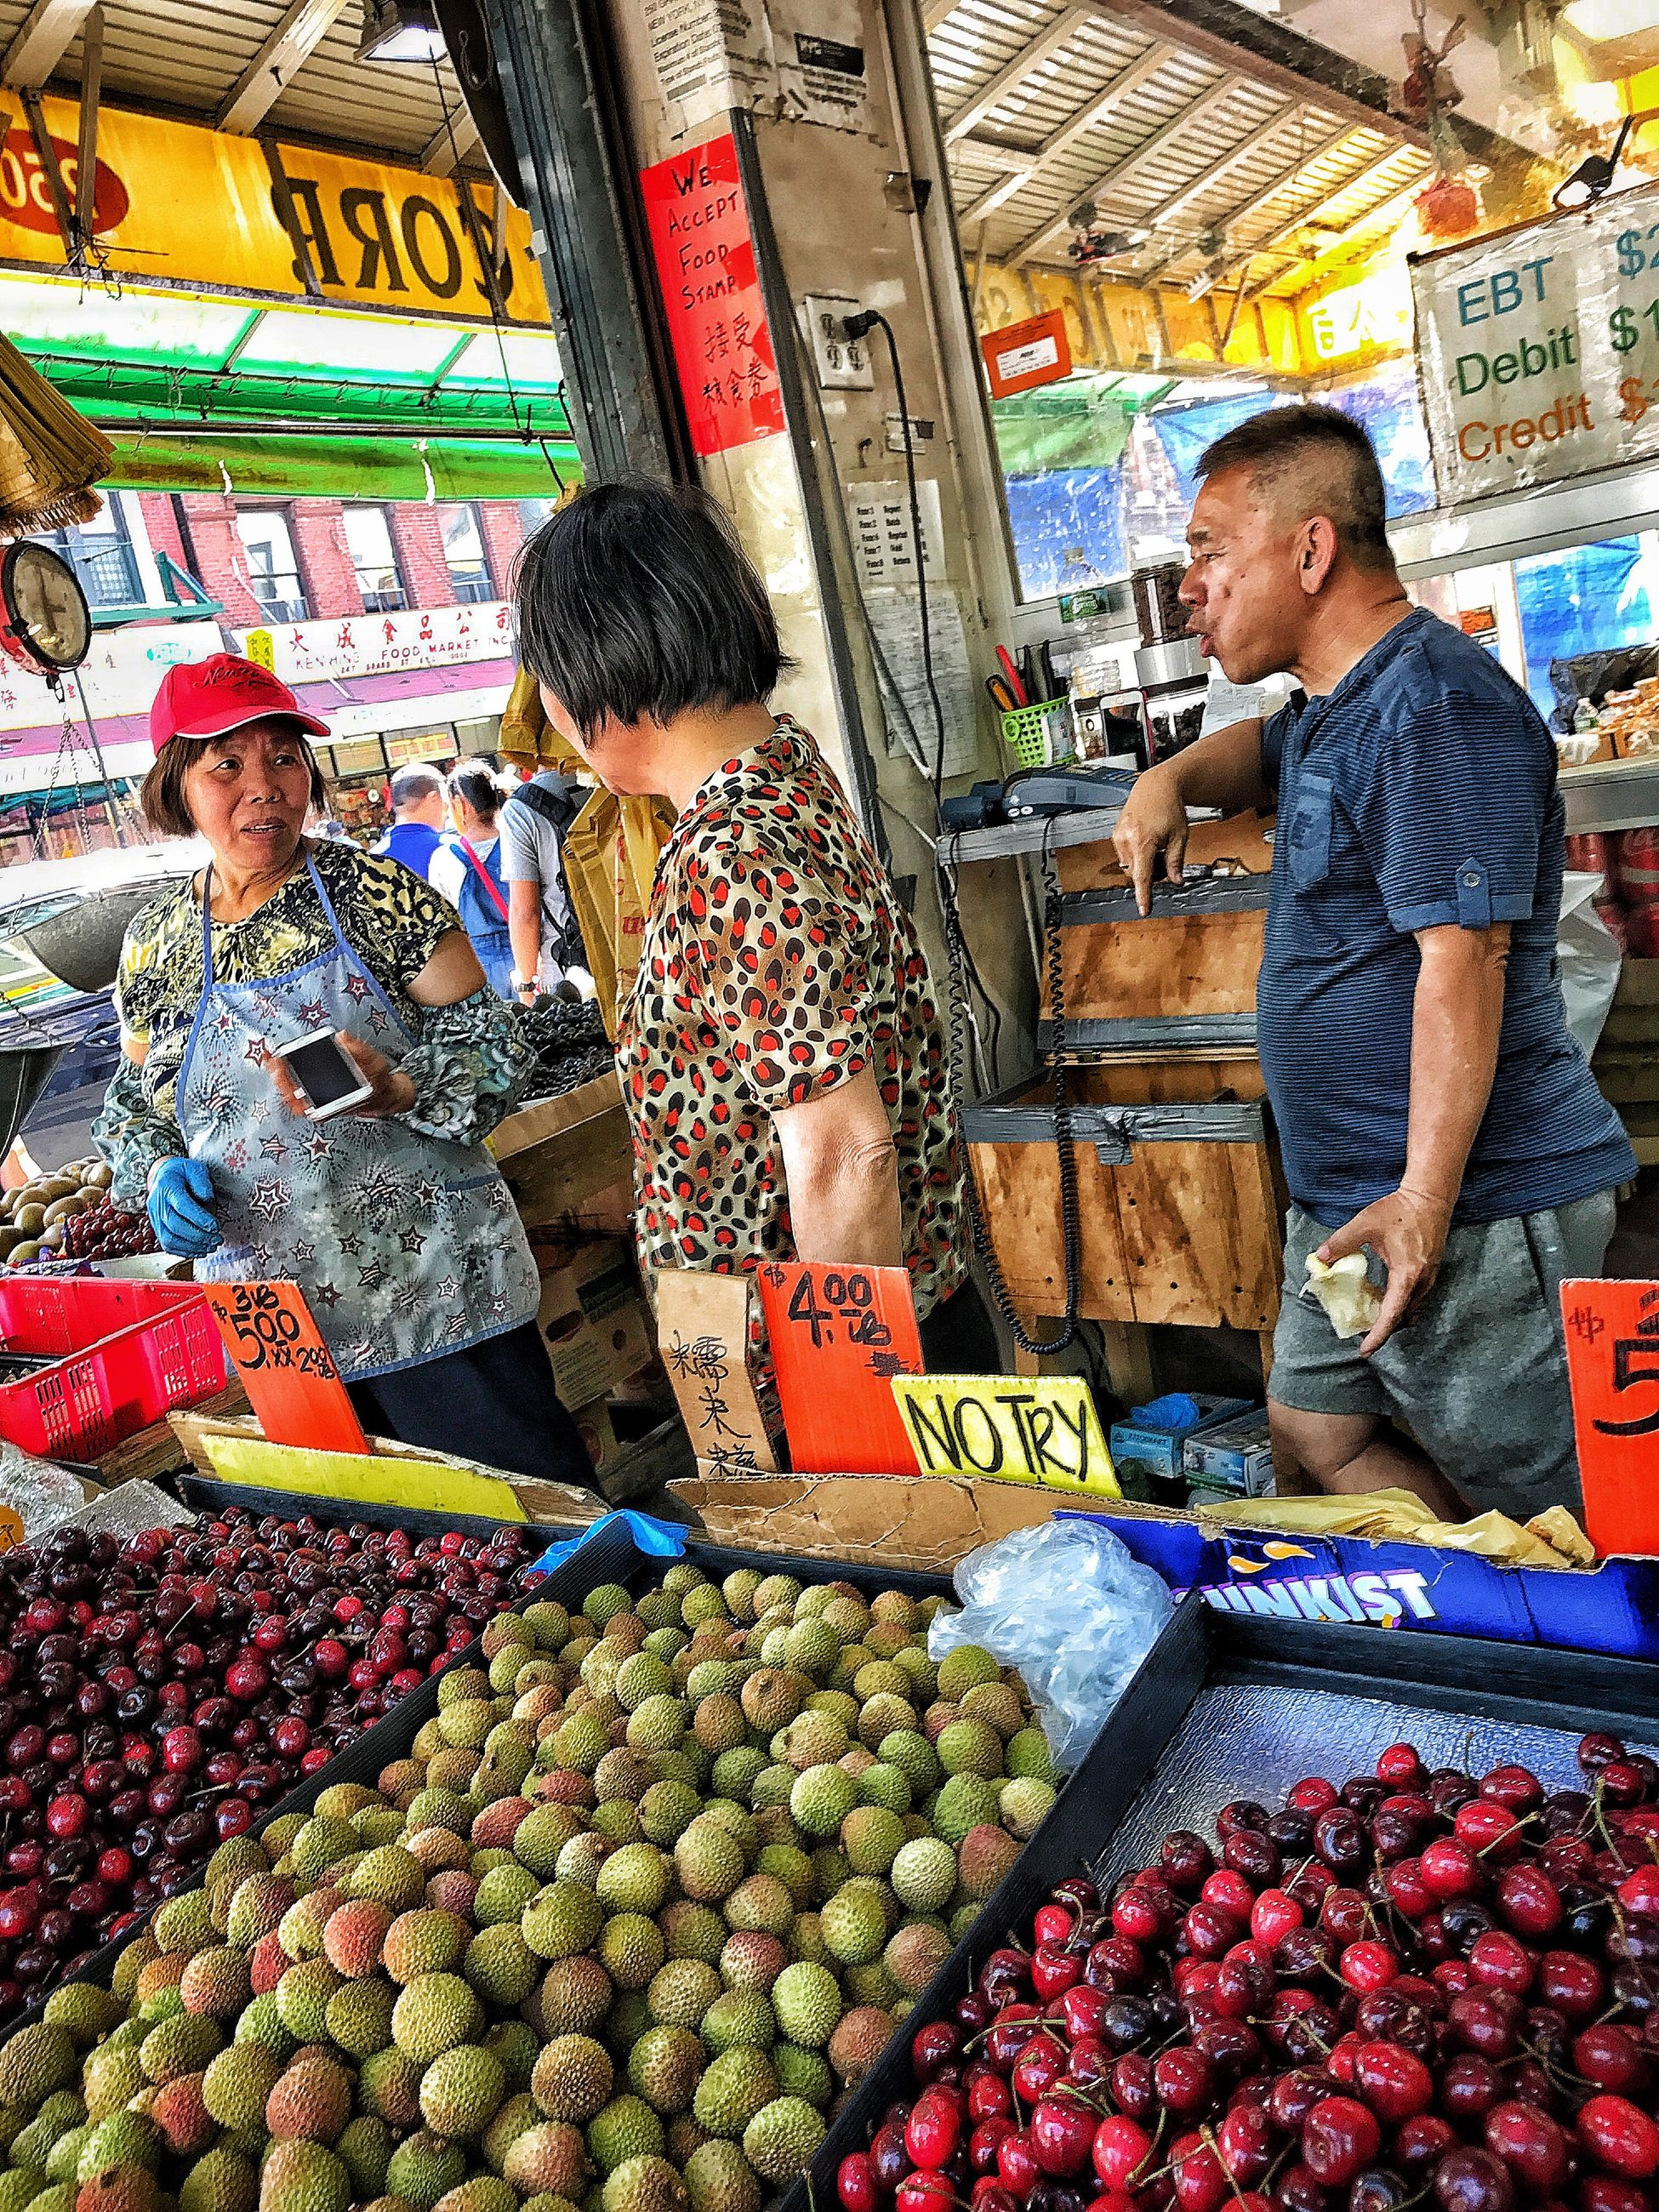 market, food and drink, market stall, fruit, retail, customer, food, day, casual clothing, buying, choice, real people, price tag, outdoors, healthy eating, freshness, men, lifestyles, women, young adult, supermarket, adult, adults only, young women, people